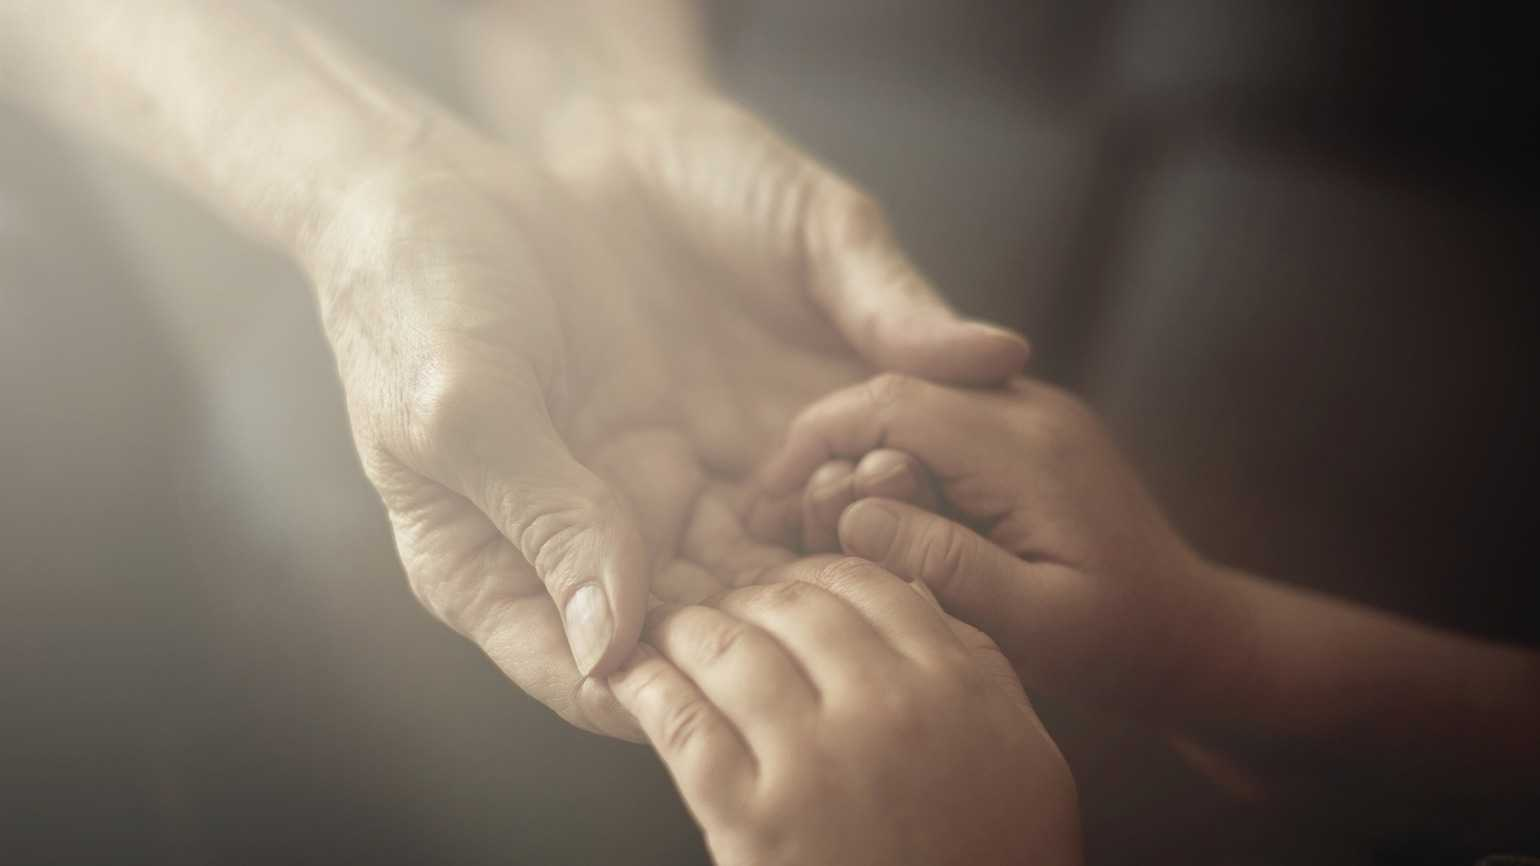 Grandson holding grandmother hands close up view (Getty Images)